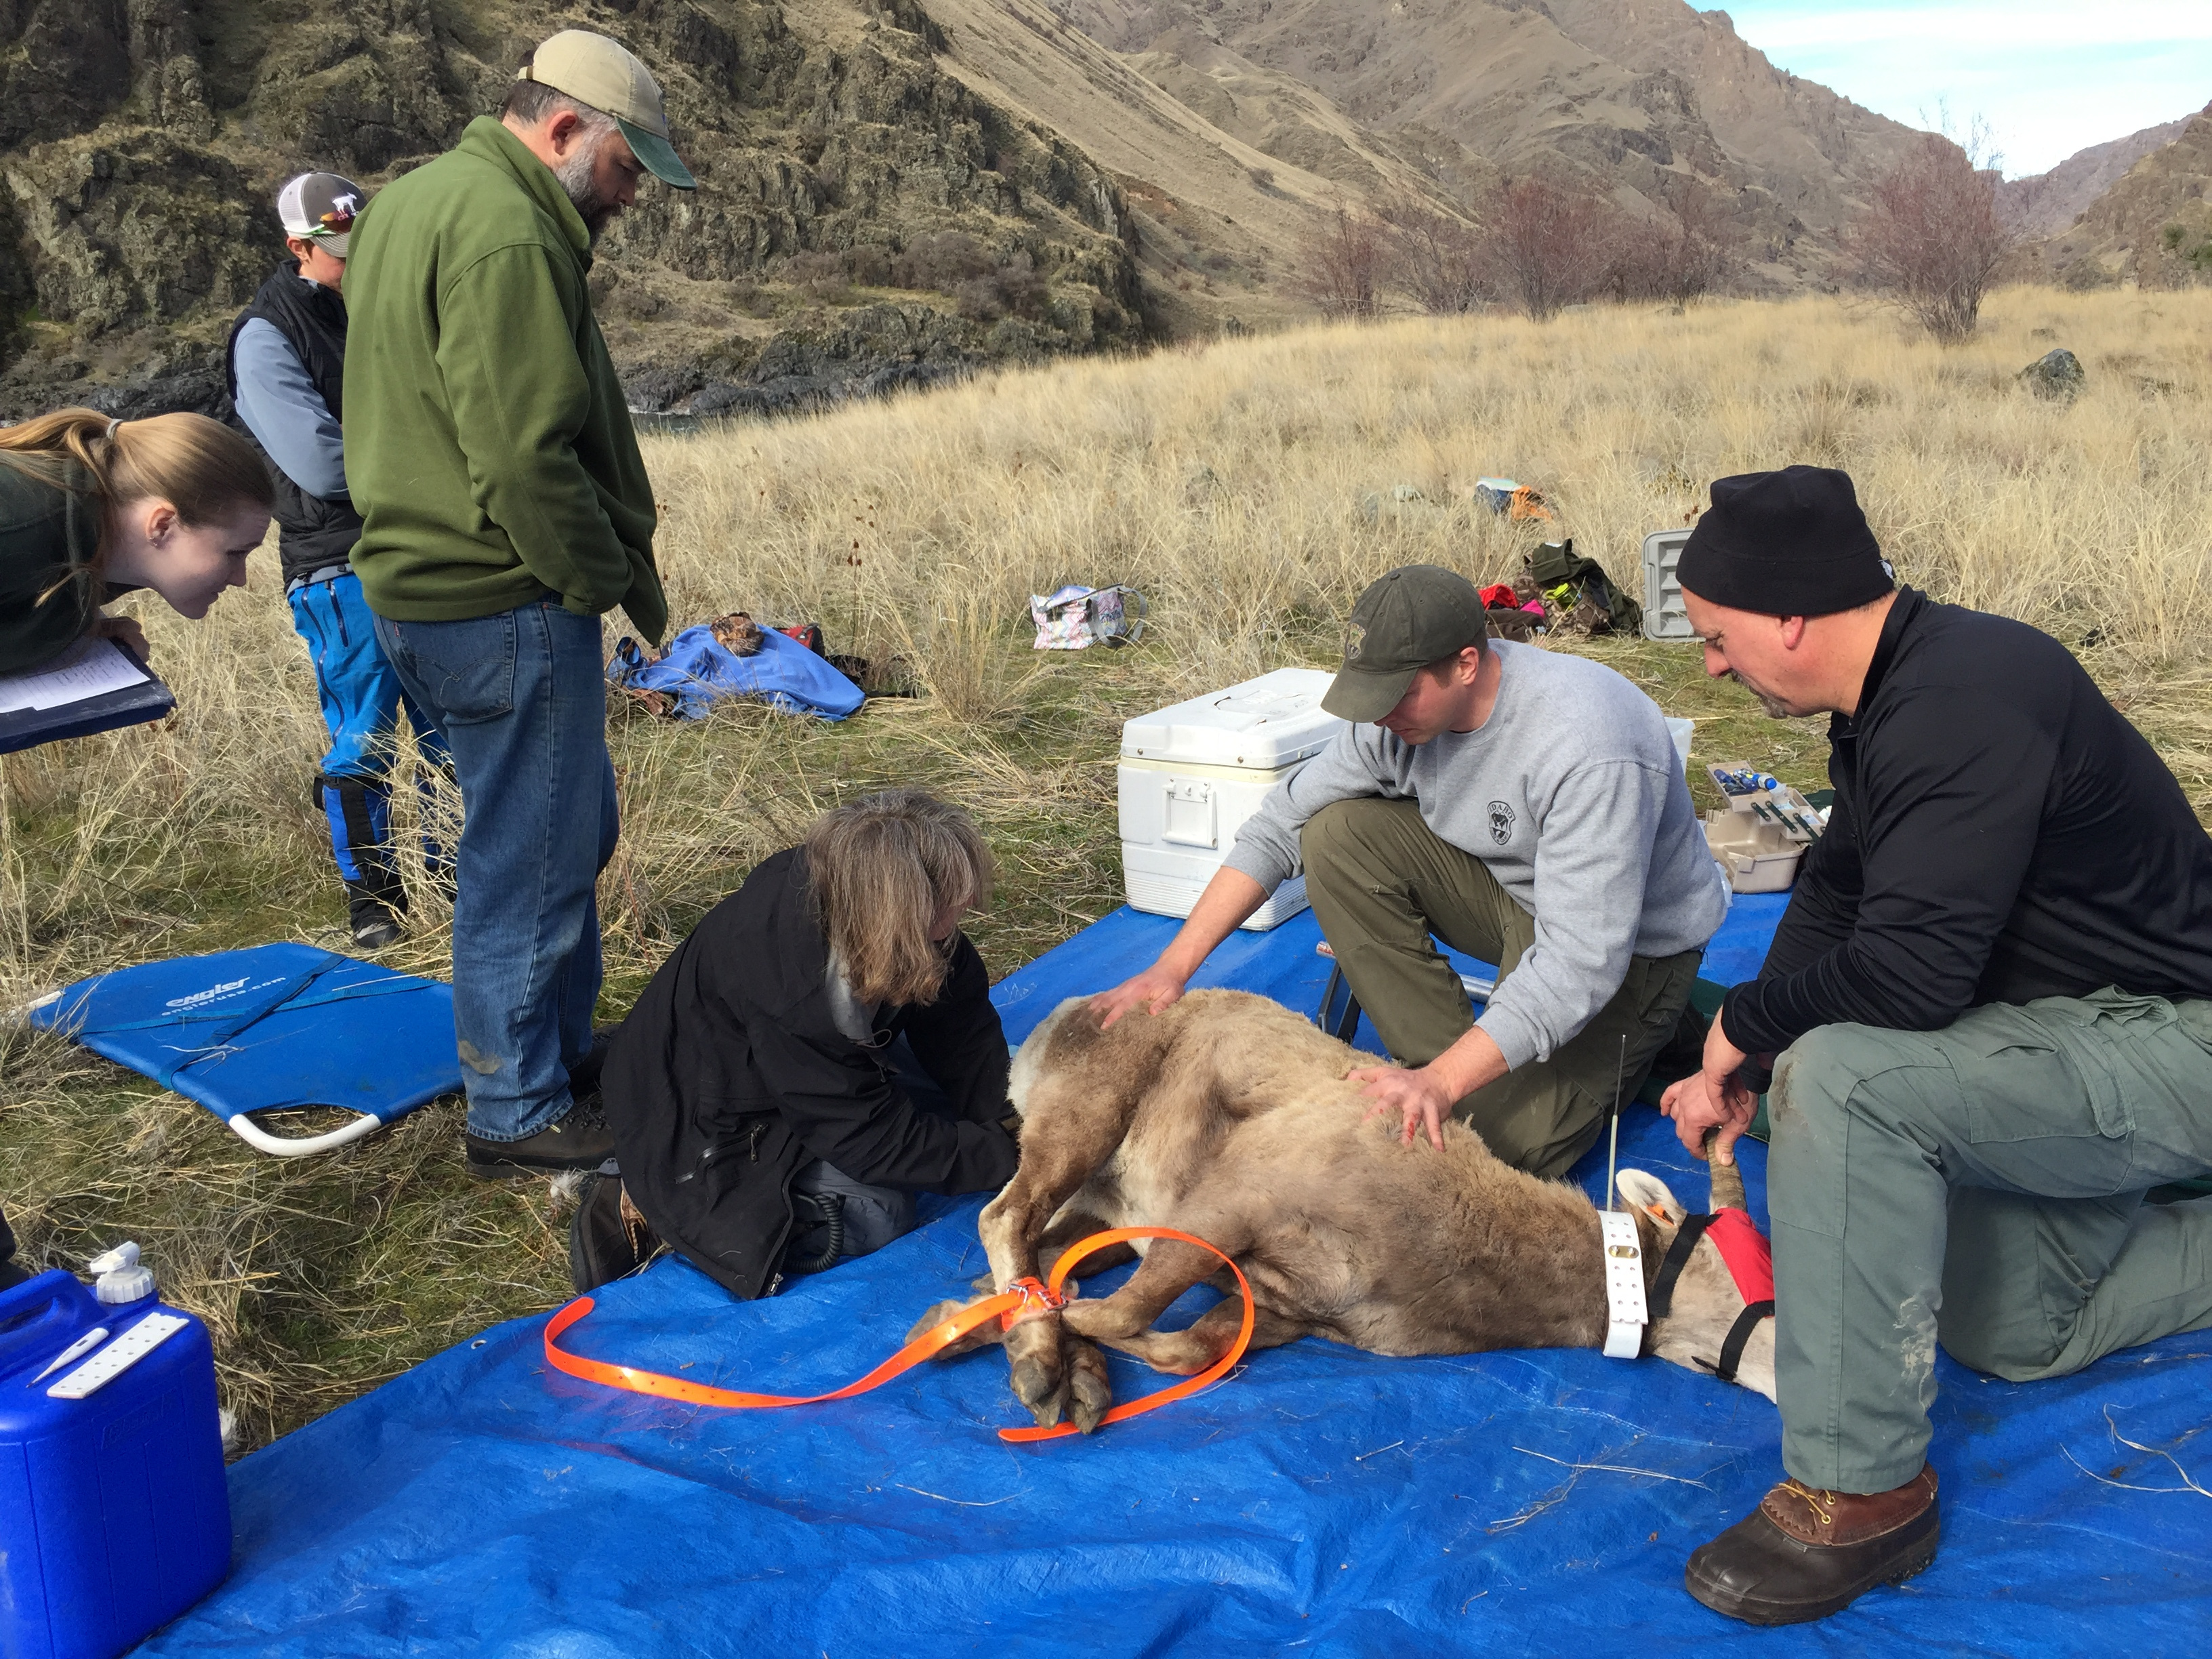 Sheep processing idaho fish and game for Fish and game idaho